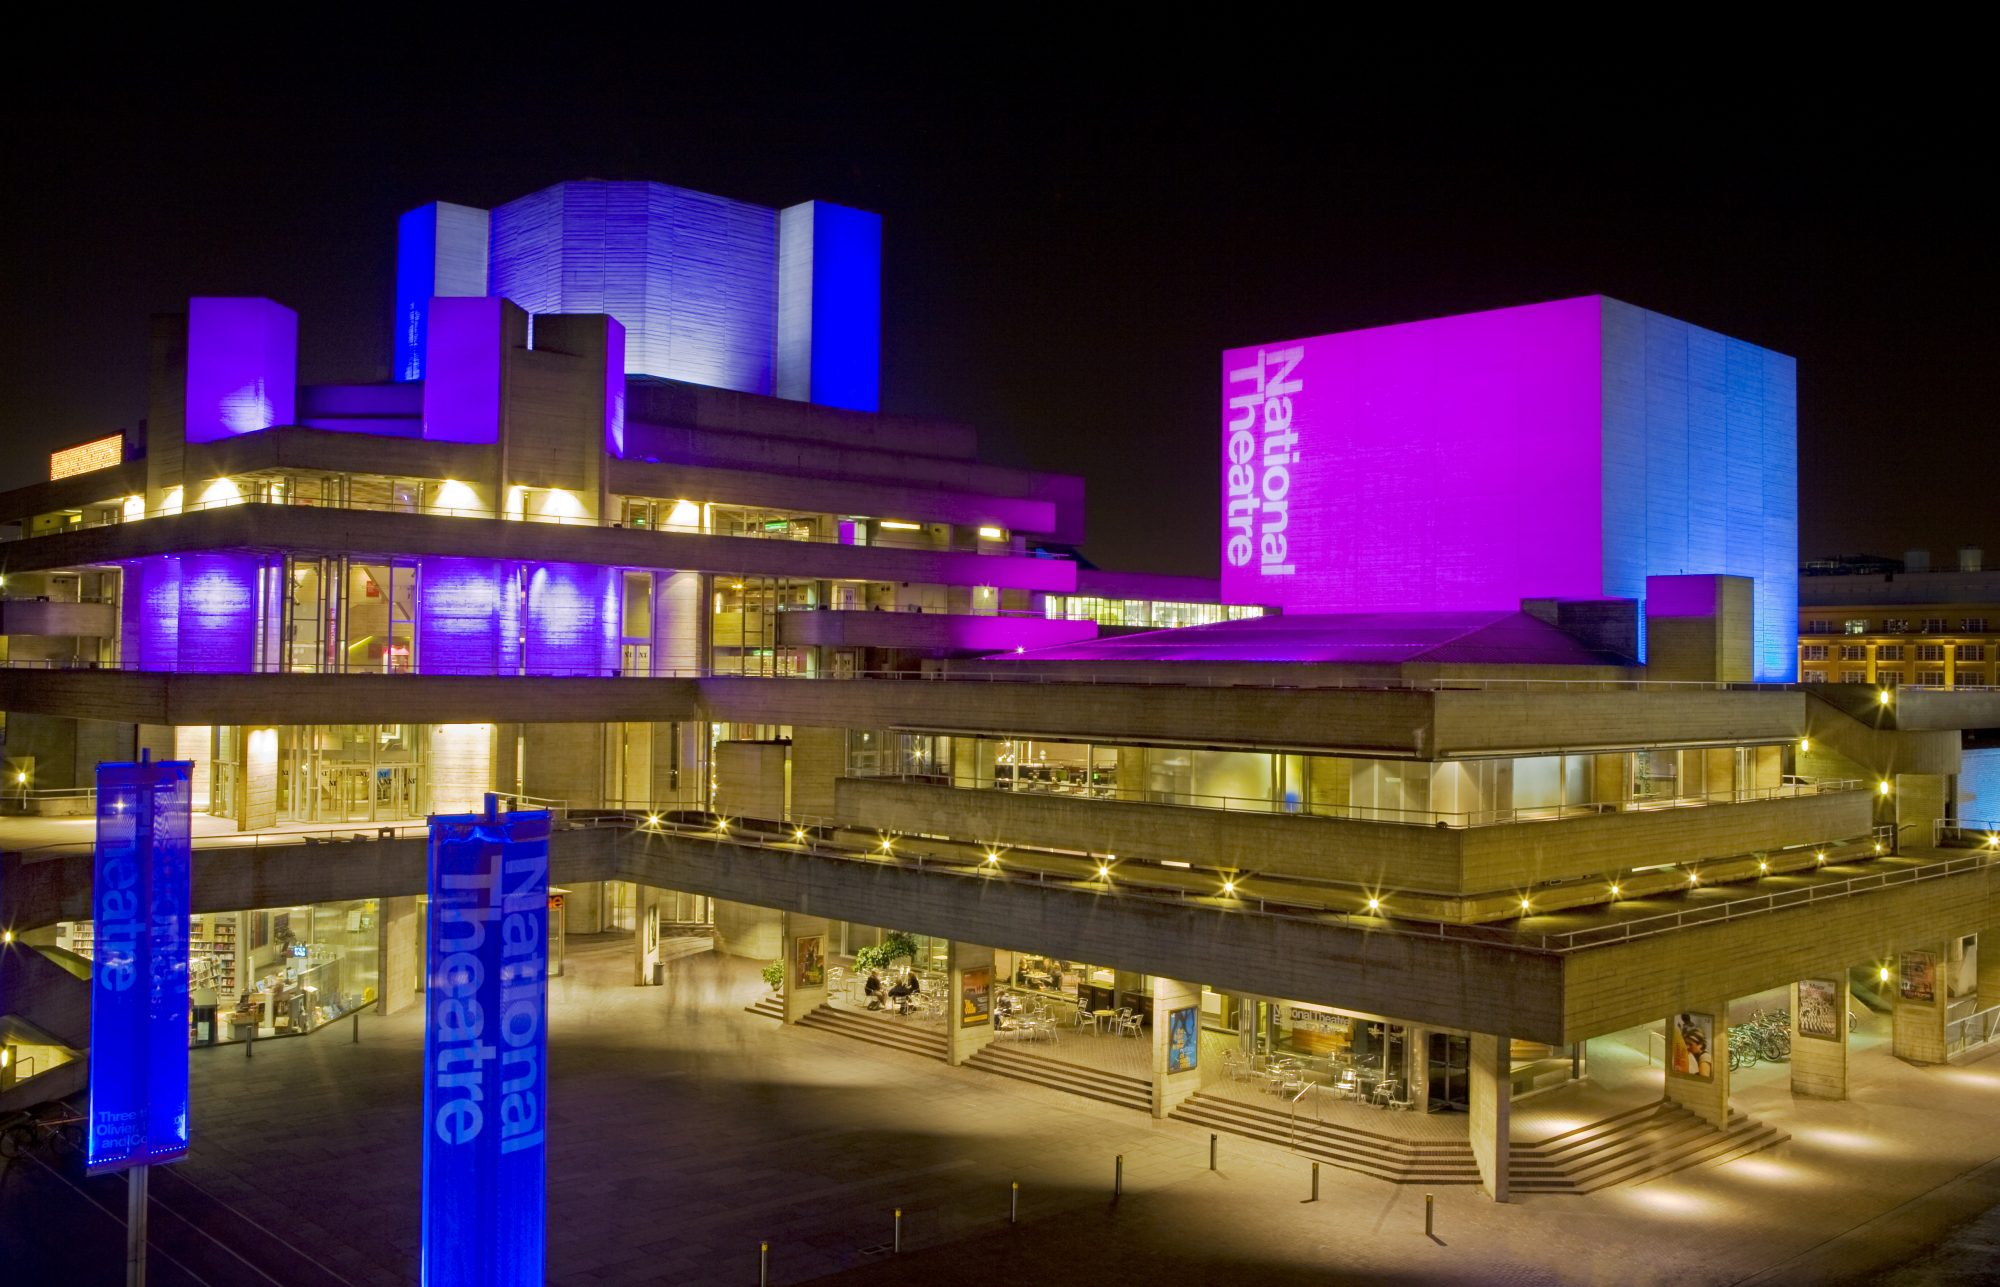 London's National Theatre Will Broadcast Plays on YouTube Beginning April 2